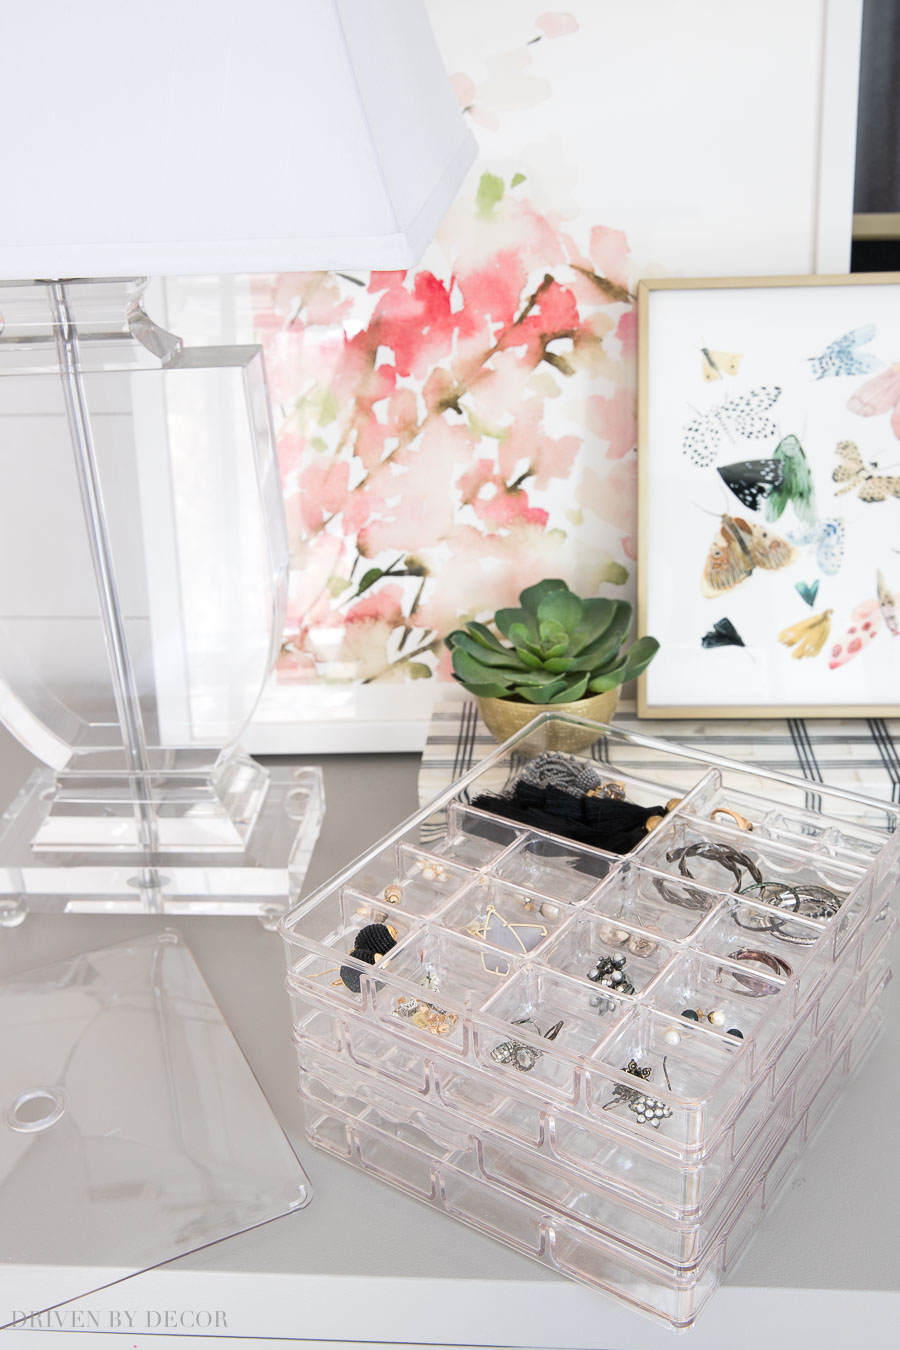 Acrylic stacked jewelry organizer - perfect for storing earrings, rings, and more!